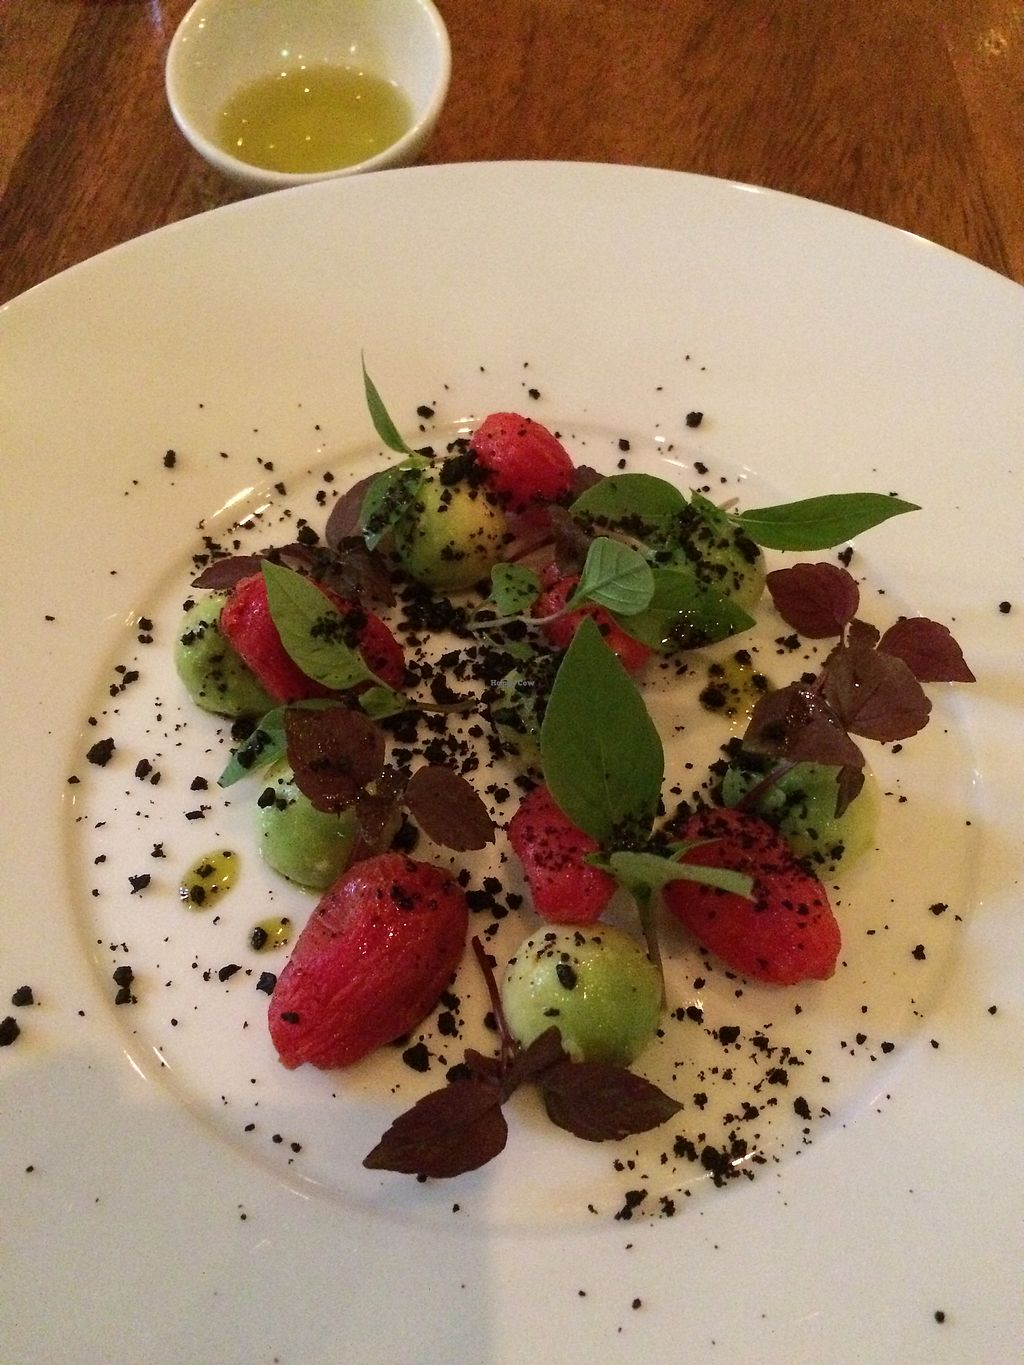 """Photo of Restaurant 27  by <a href=""""/members/profile/EvaWilson"""">EvaWilson</a> <br/>Avocado and tomato goodness <br/> July 16, 2017  - <a href='/contact/abuse/image/96326/280983'>Report</a>"""